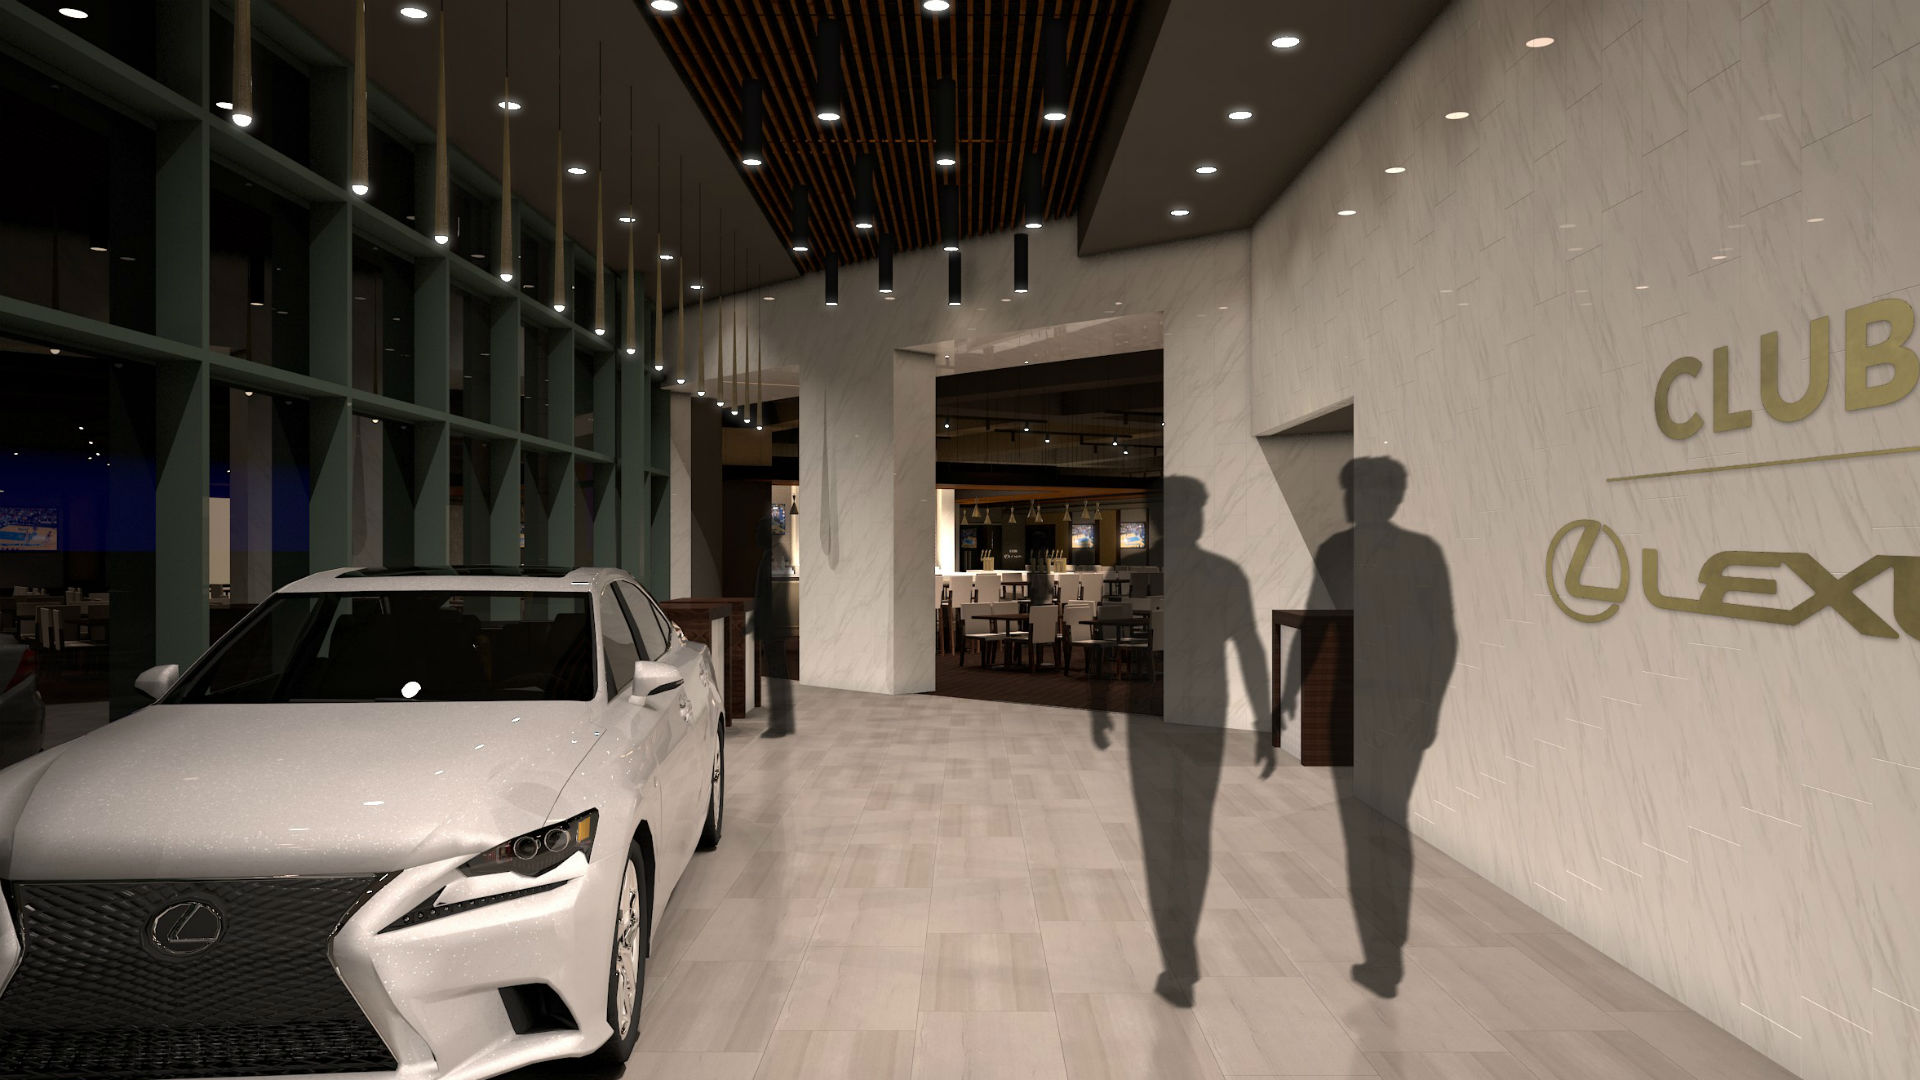 Pepsi Center introduces Club Lexus for best seats in the house NBA